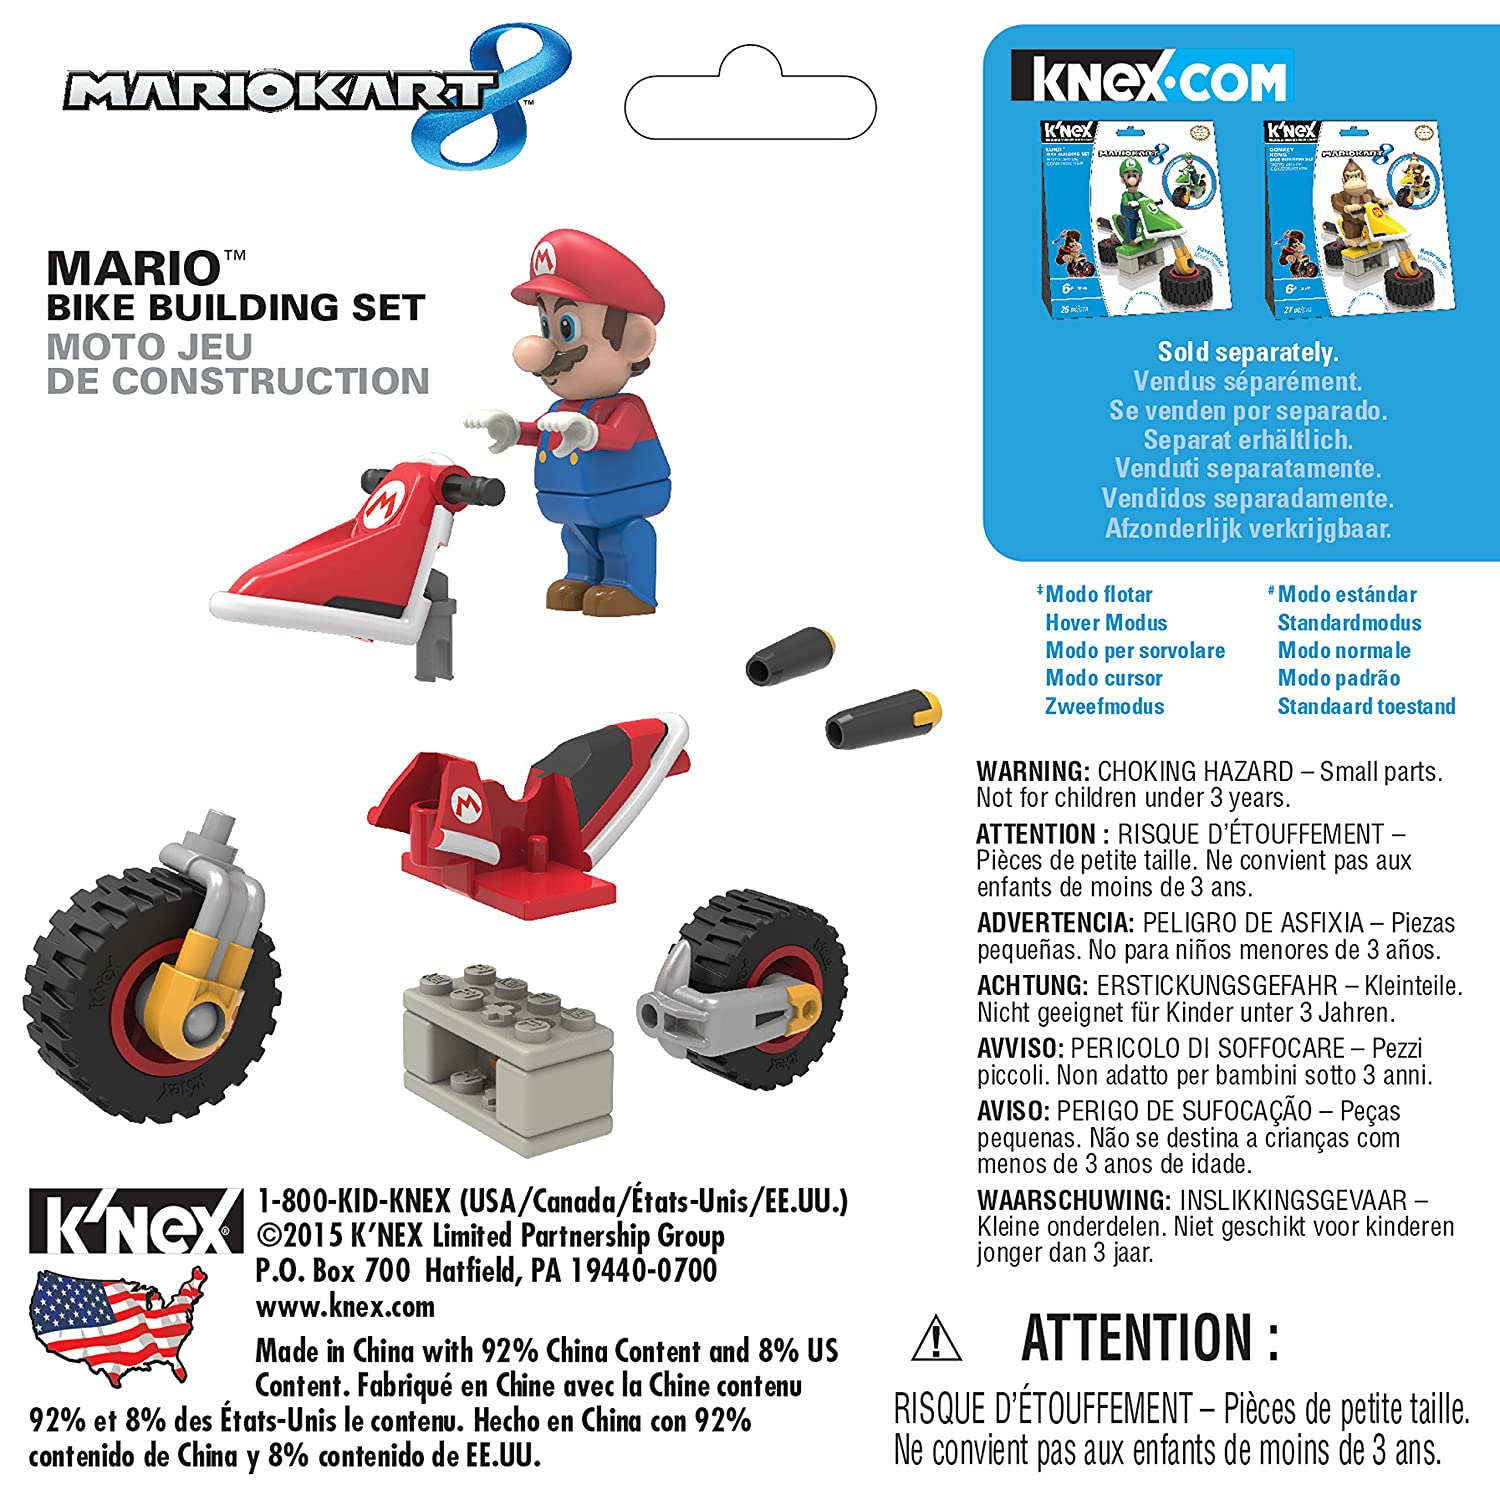 Mario kart 8 for sale - Buy Knex Mario Kart 8 Bike Building Set Online At Low Prices In India Amazon In